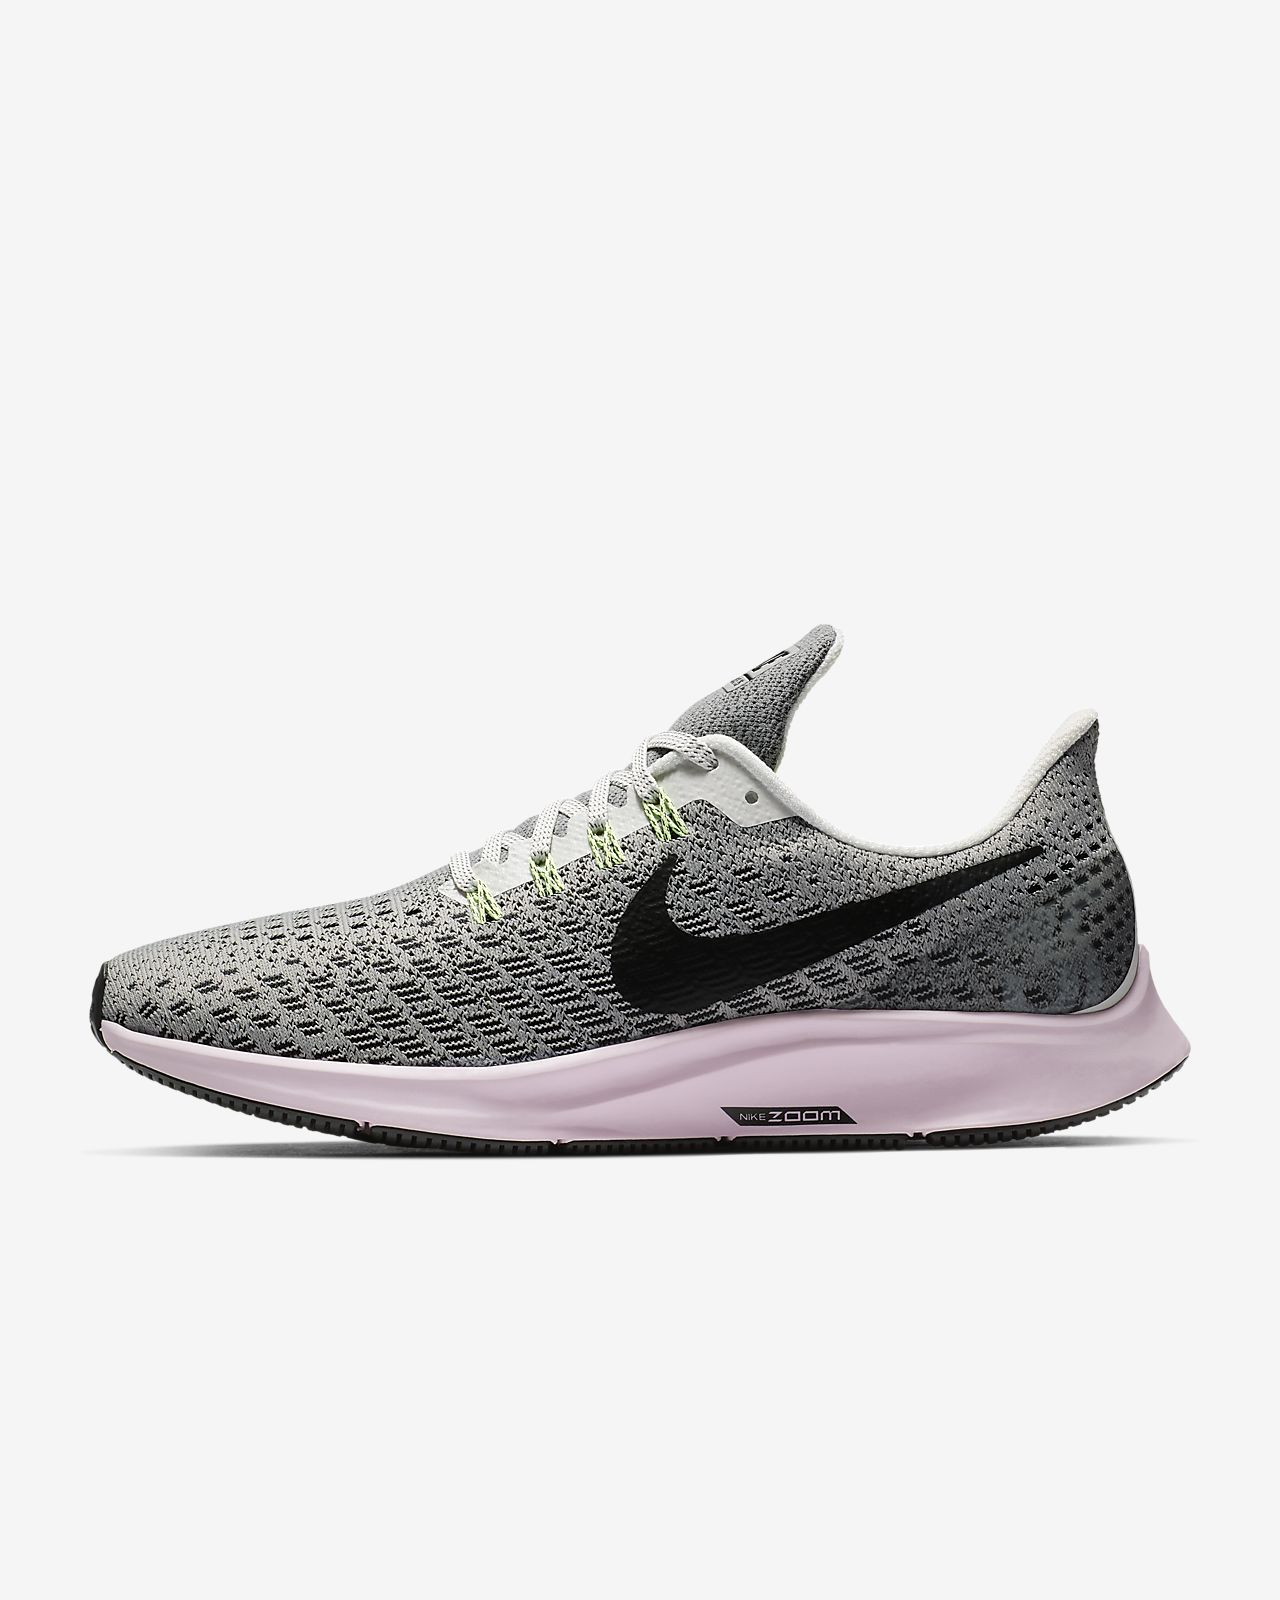 6410e4f498fc Nike Air Zoom Pegasus 35 Women s Running Shoe. Nike.com